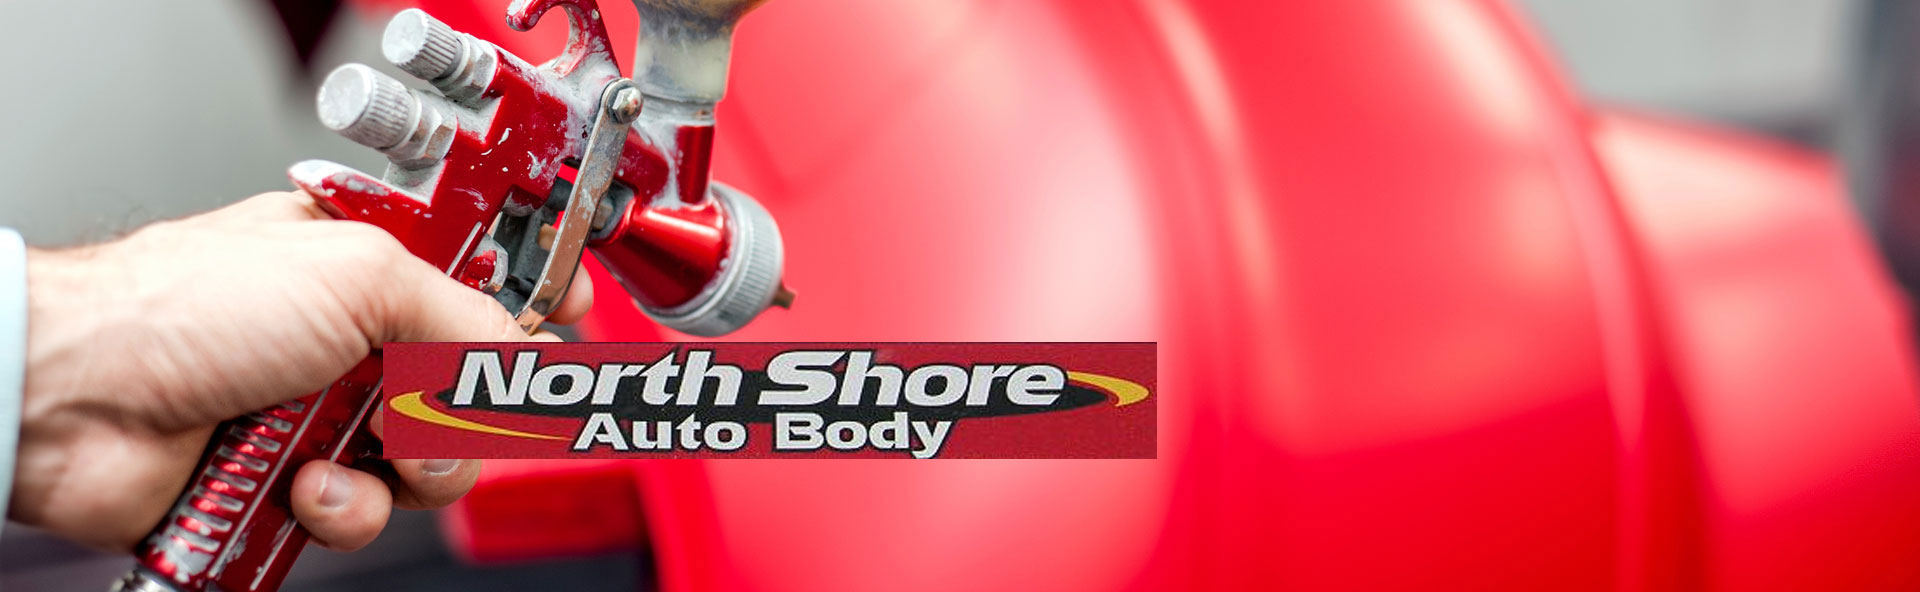 north-shore-autobody-service-danvers-111